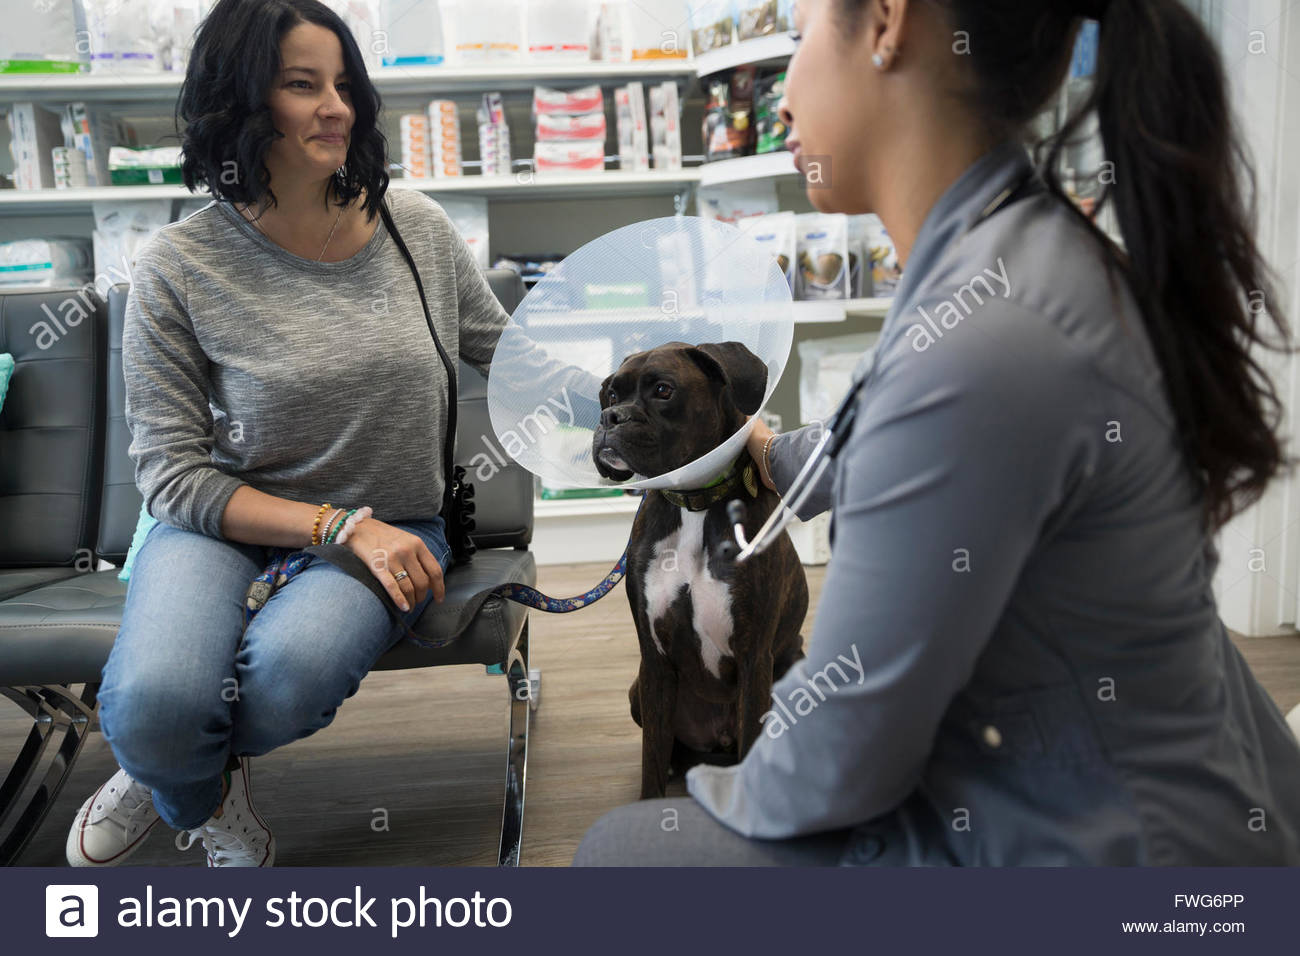 Veterinarian talking to woman with dog wearing cone - Stock Image